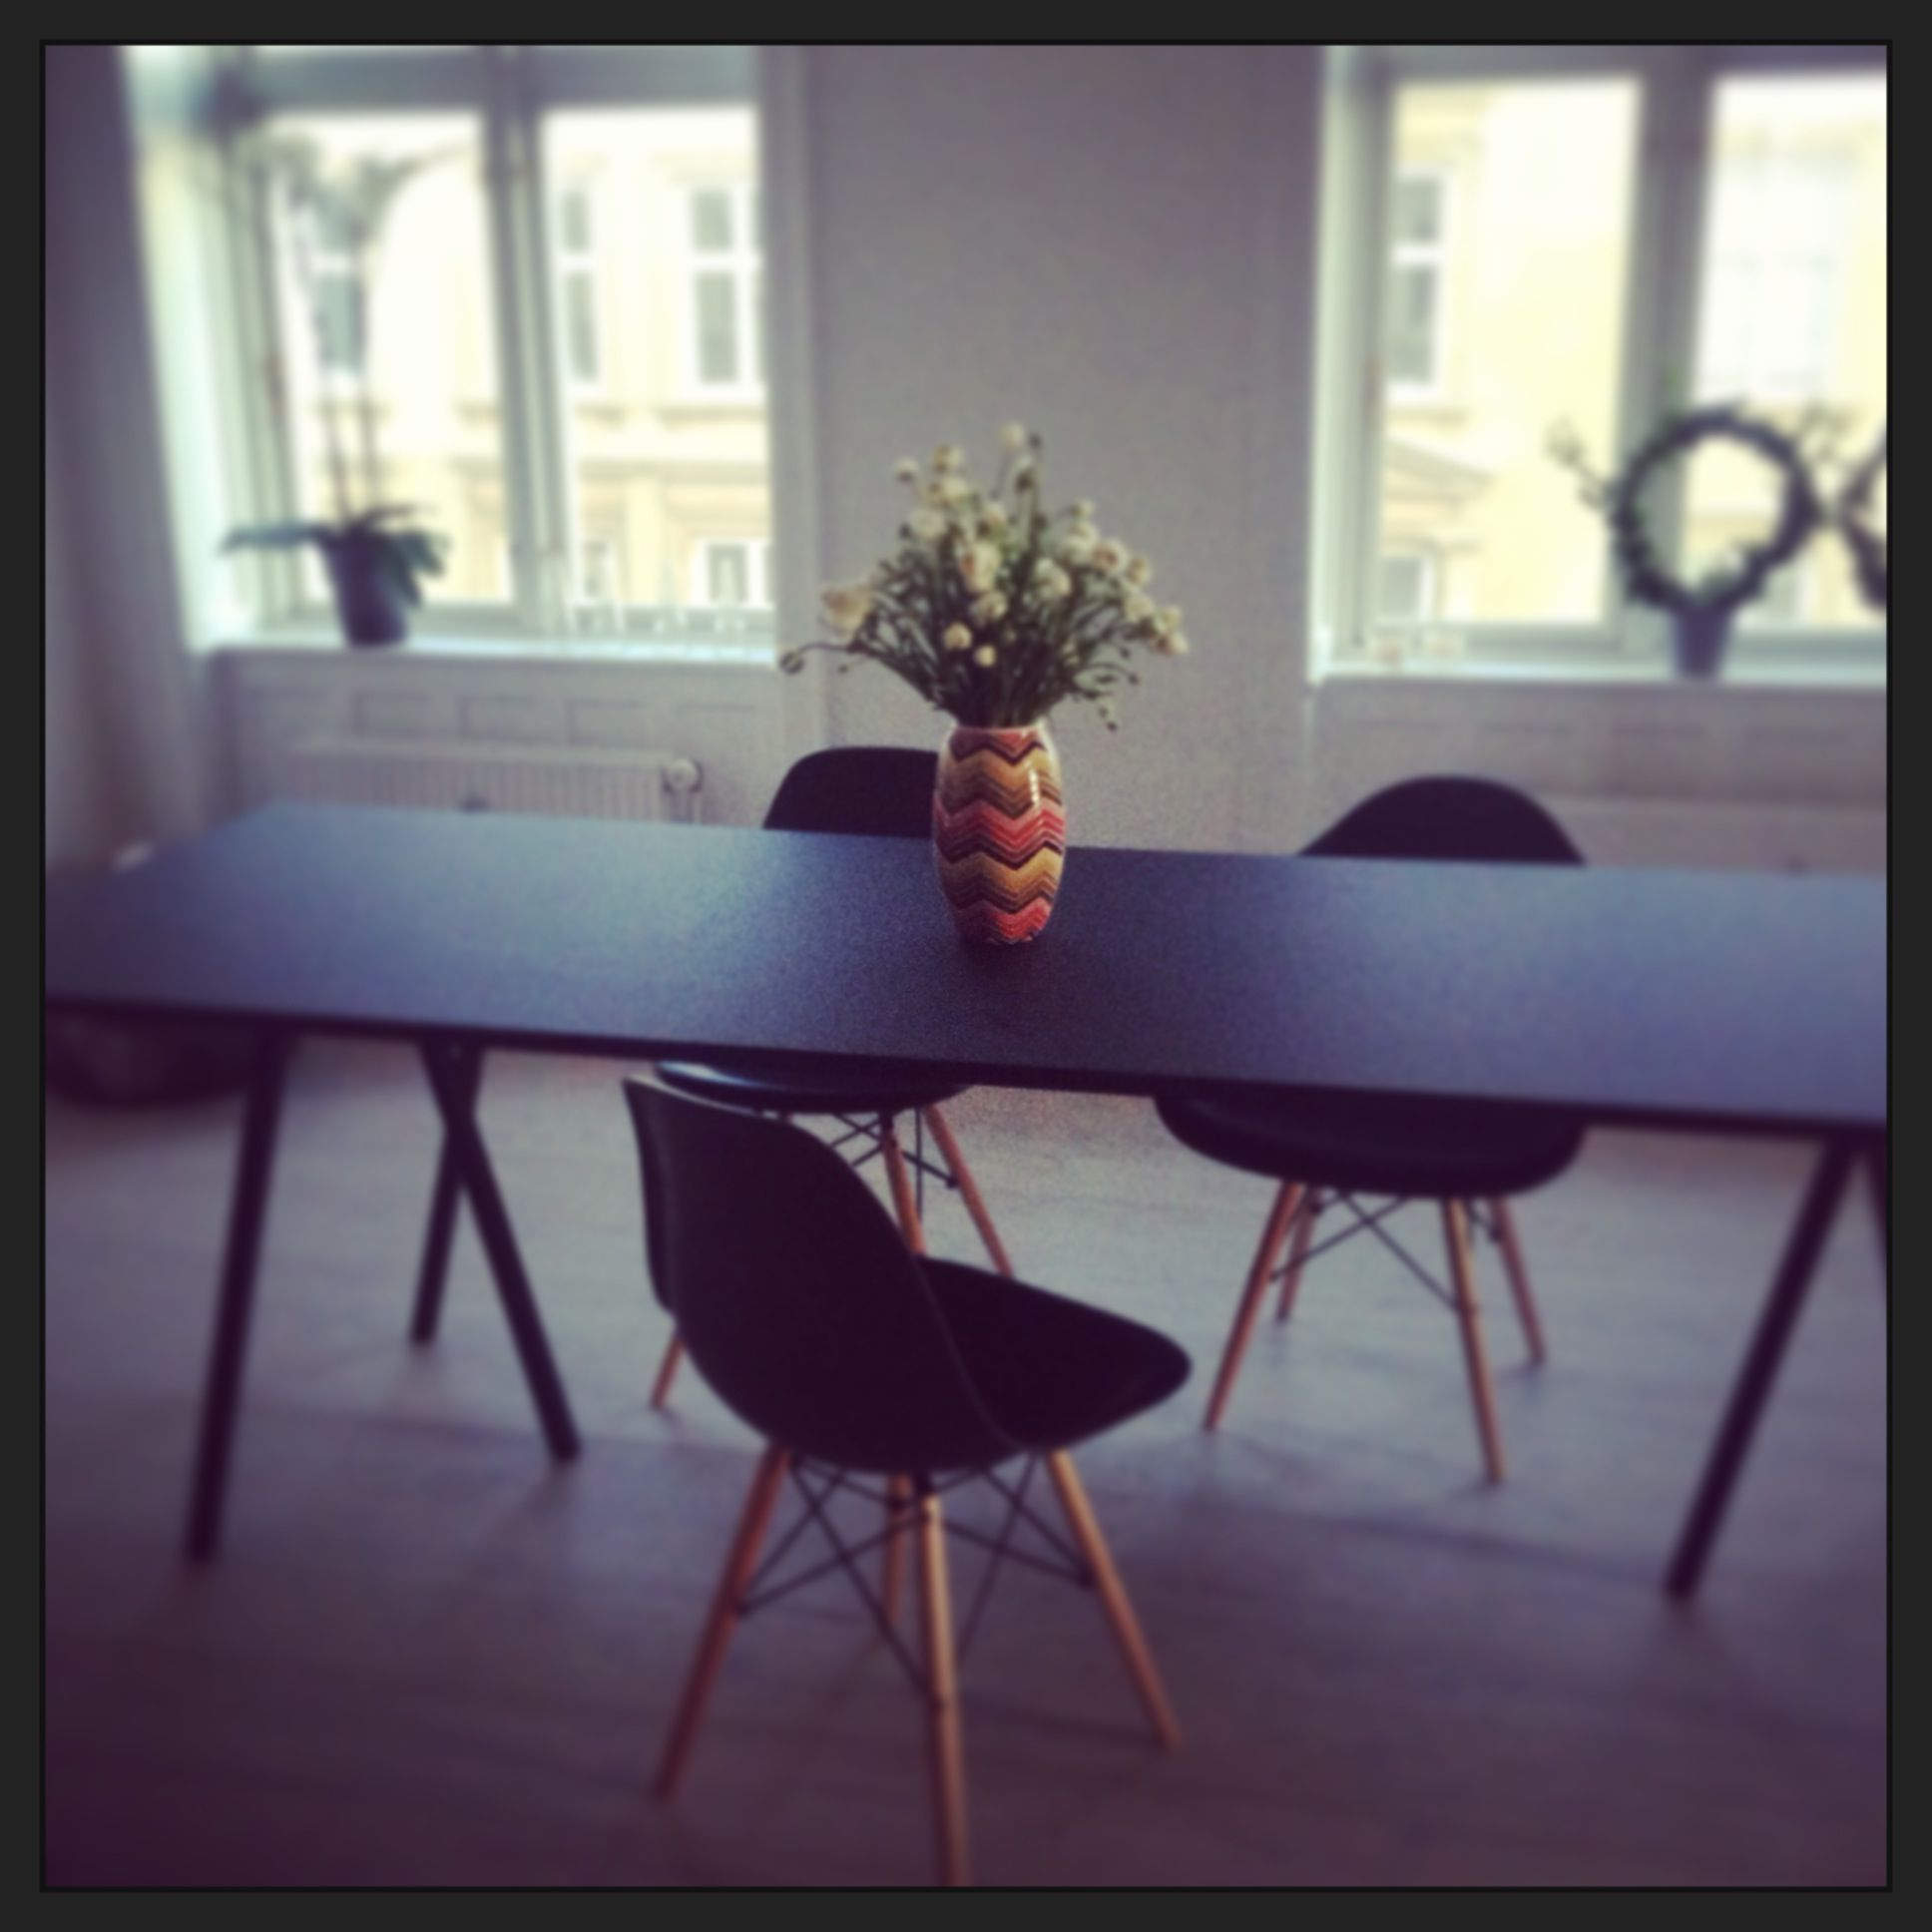 Eames chair, Hay loop stand Table Black, multicolor vase. Copenhagen ...